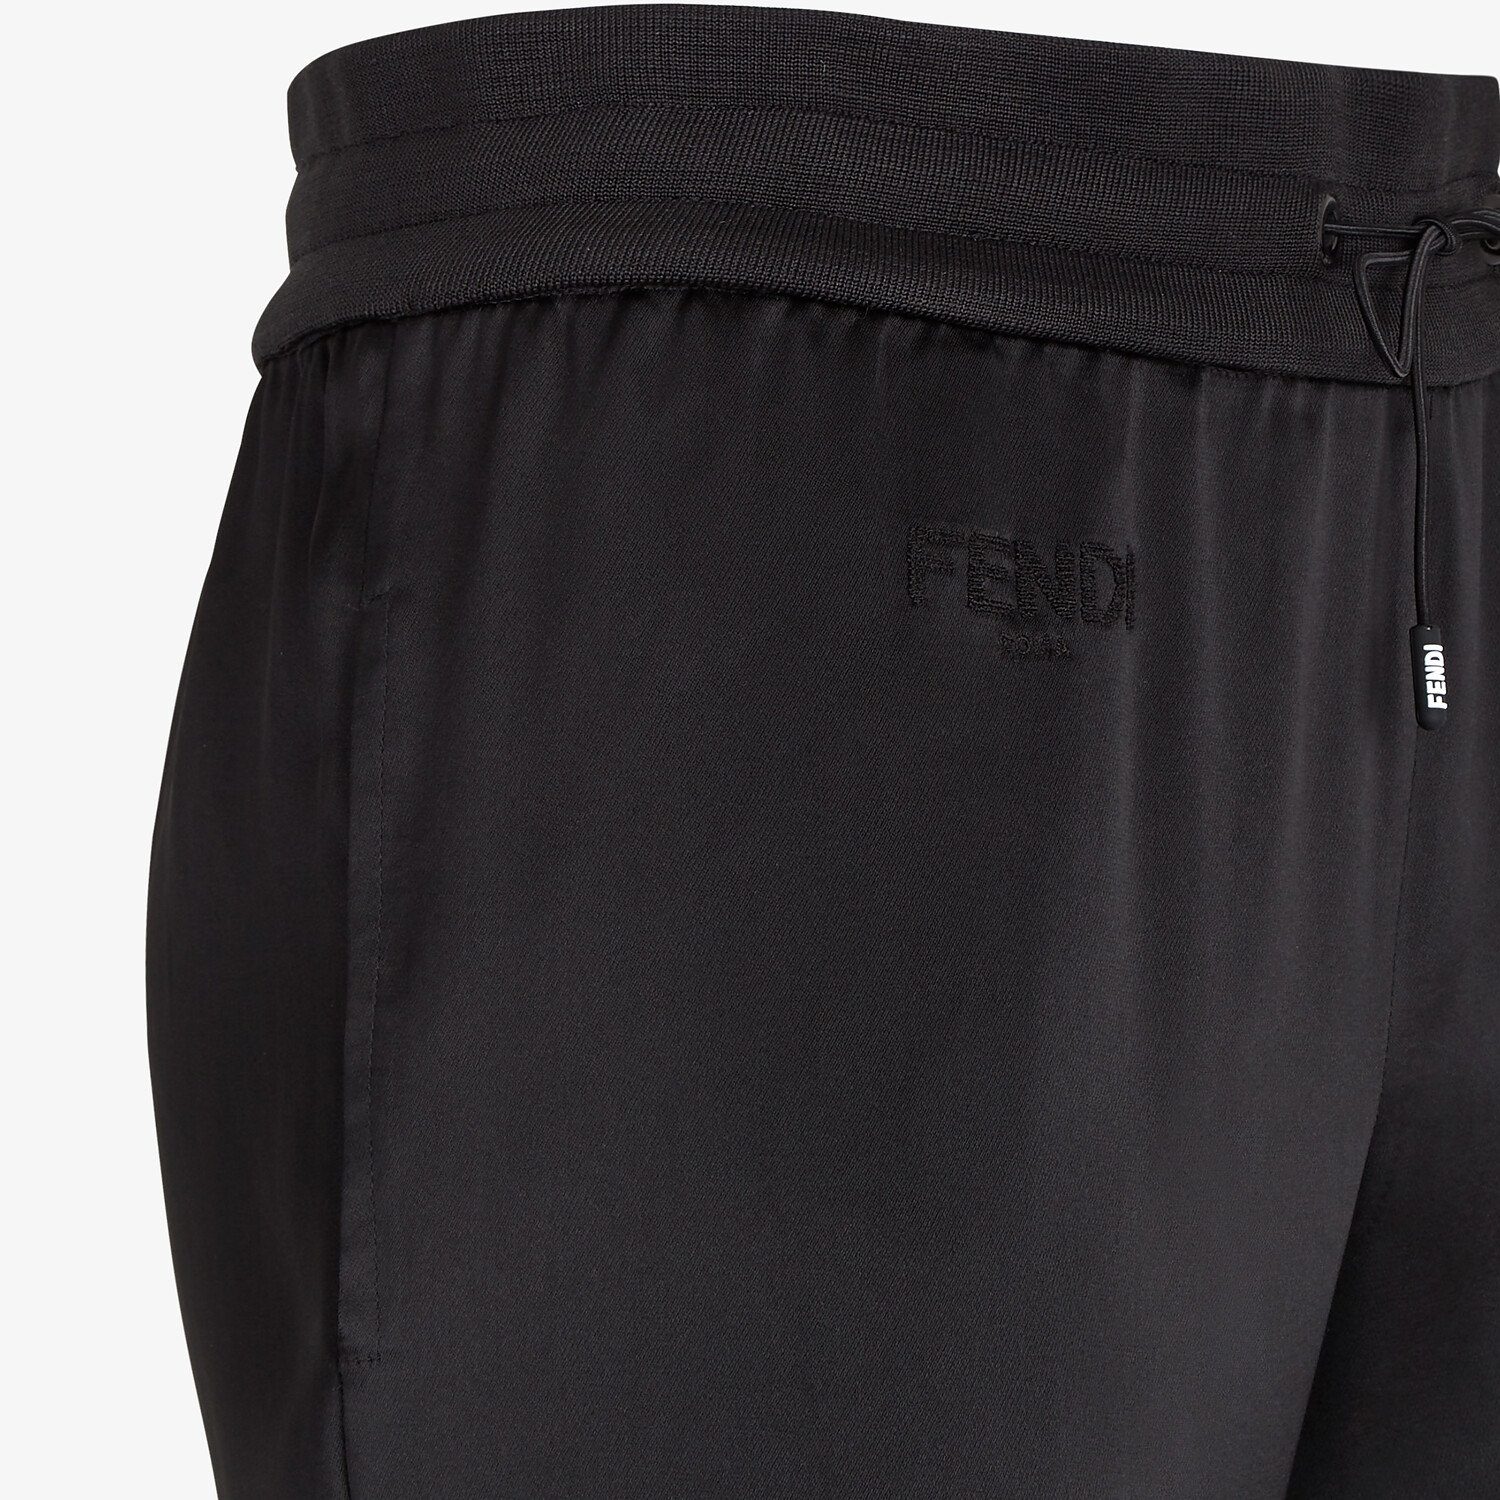 FENDI JUMPSUIT - Black satin sweatshirt and pants - view 6 detail